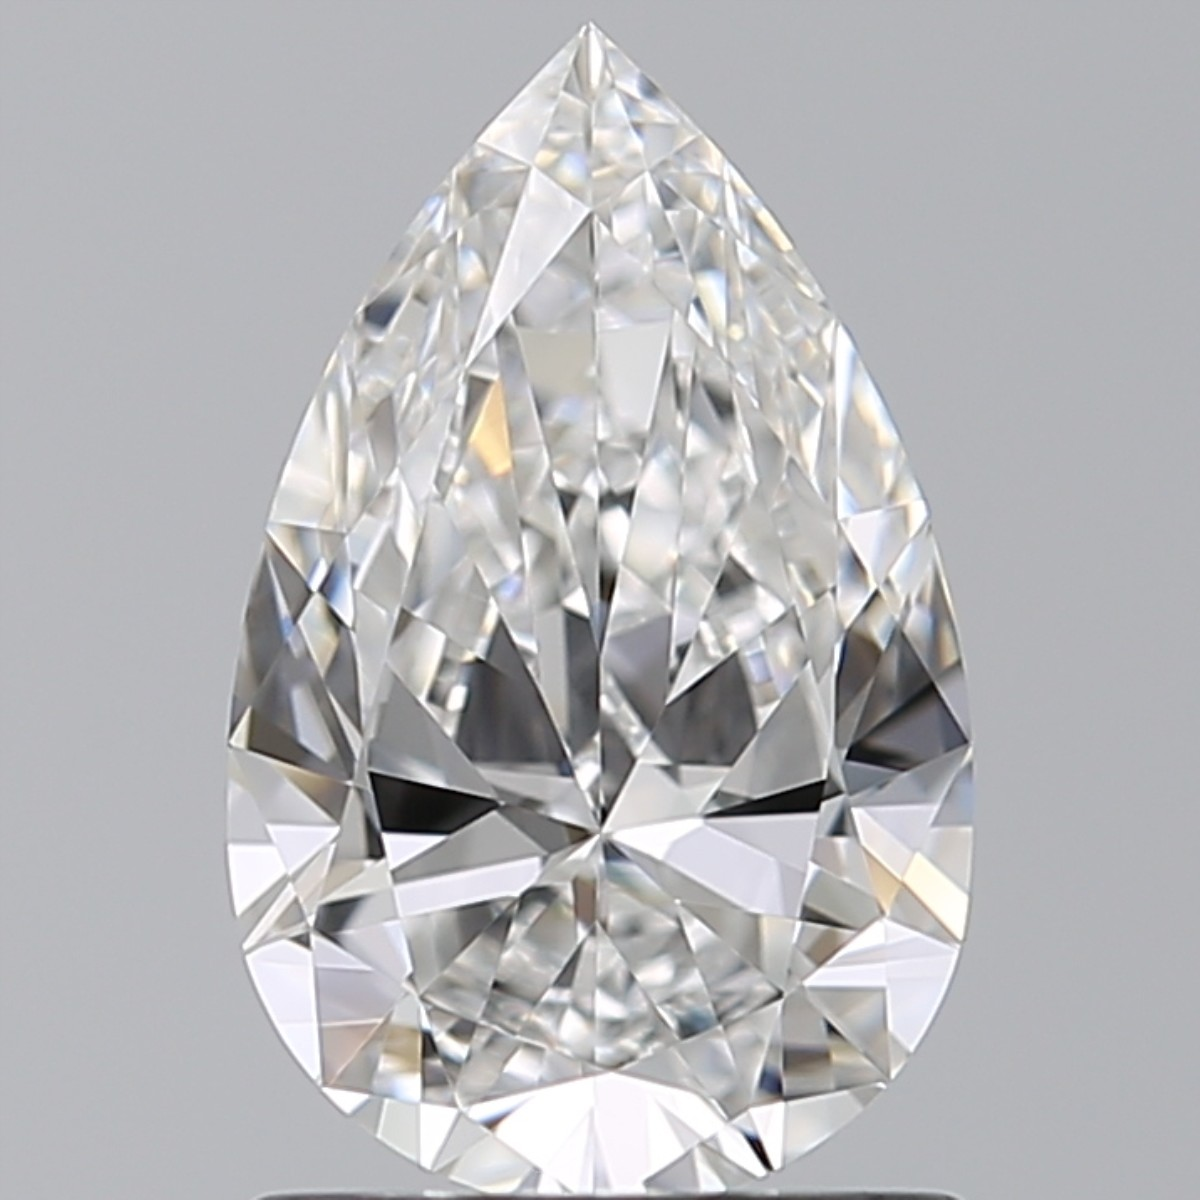 1.01 Carat Pear Diamond (E/IF)